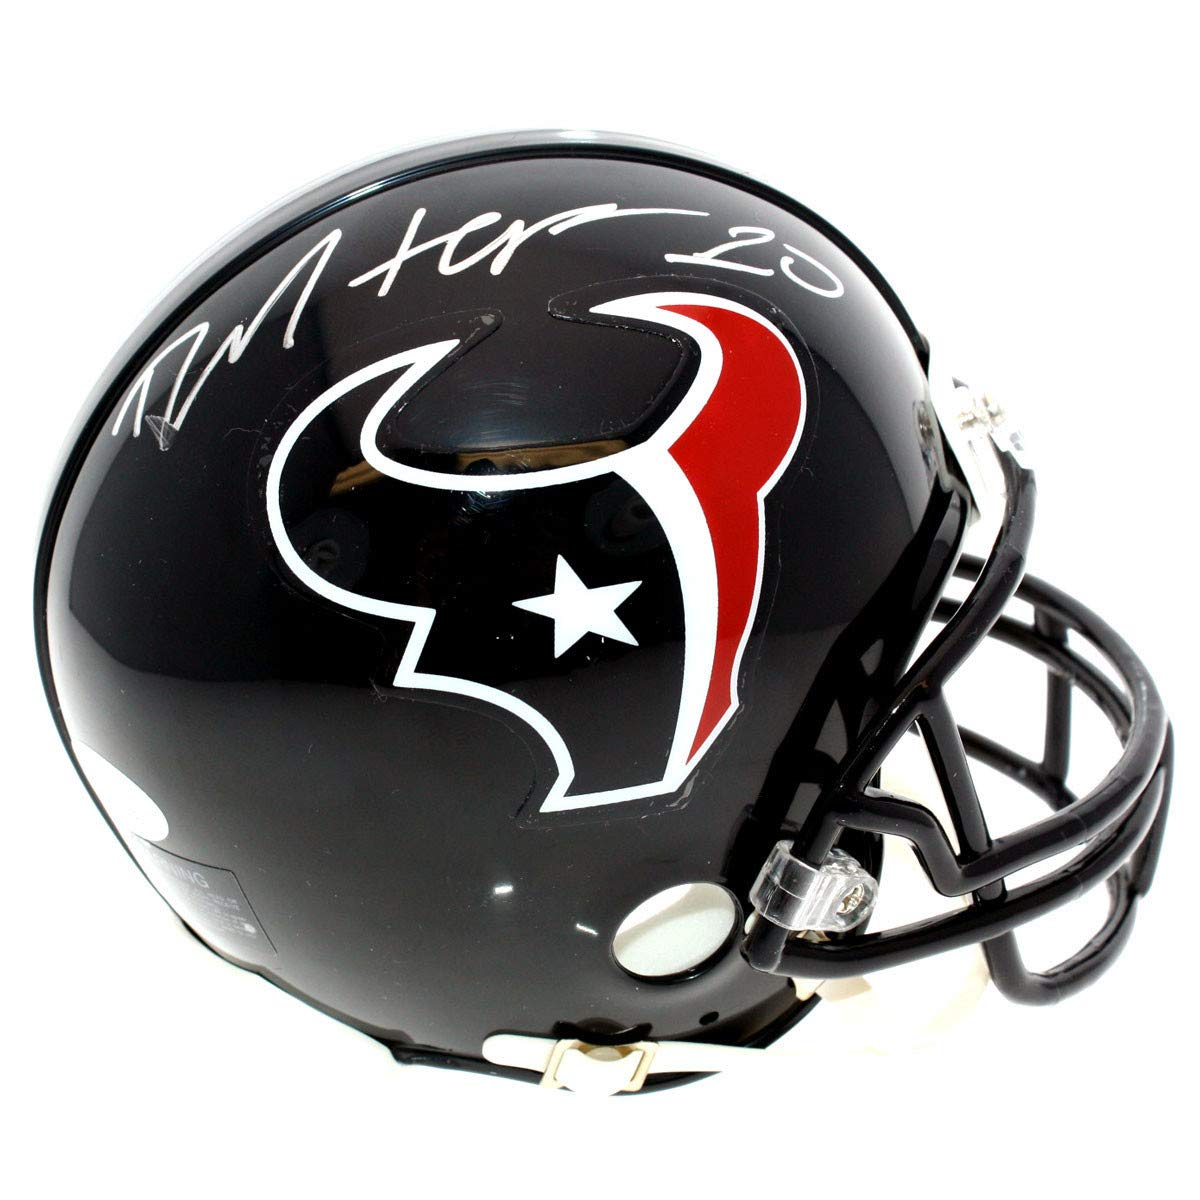 DeAndre Hopkins Autographed Signed Houston Texans Mini Helmet - JSA Certified Authentic - Autographed Signed Mini Helmets